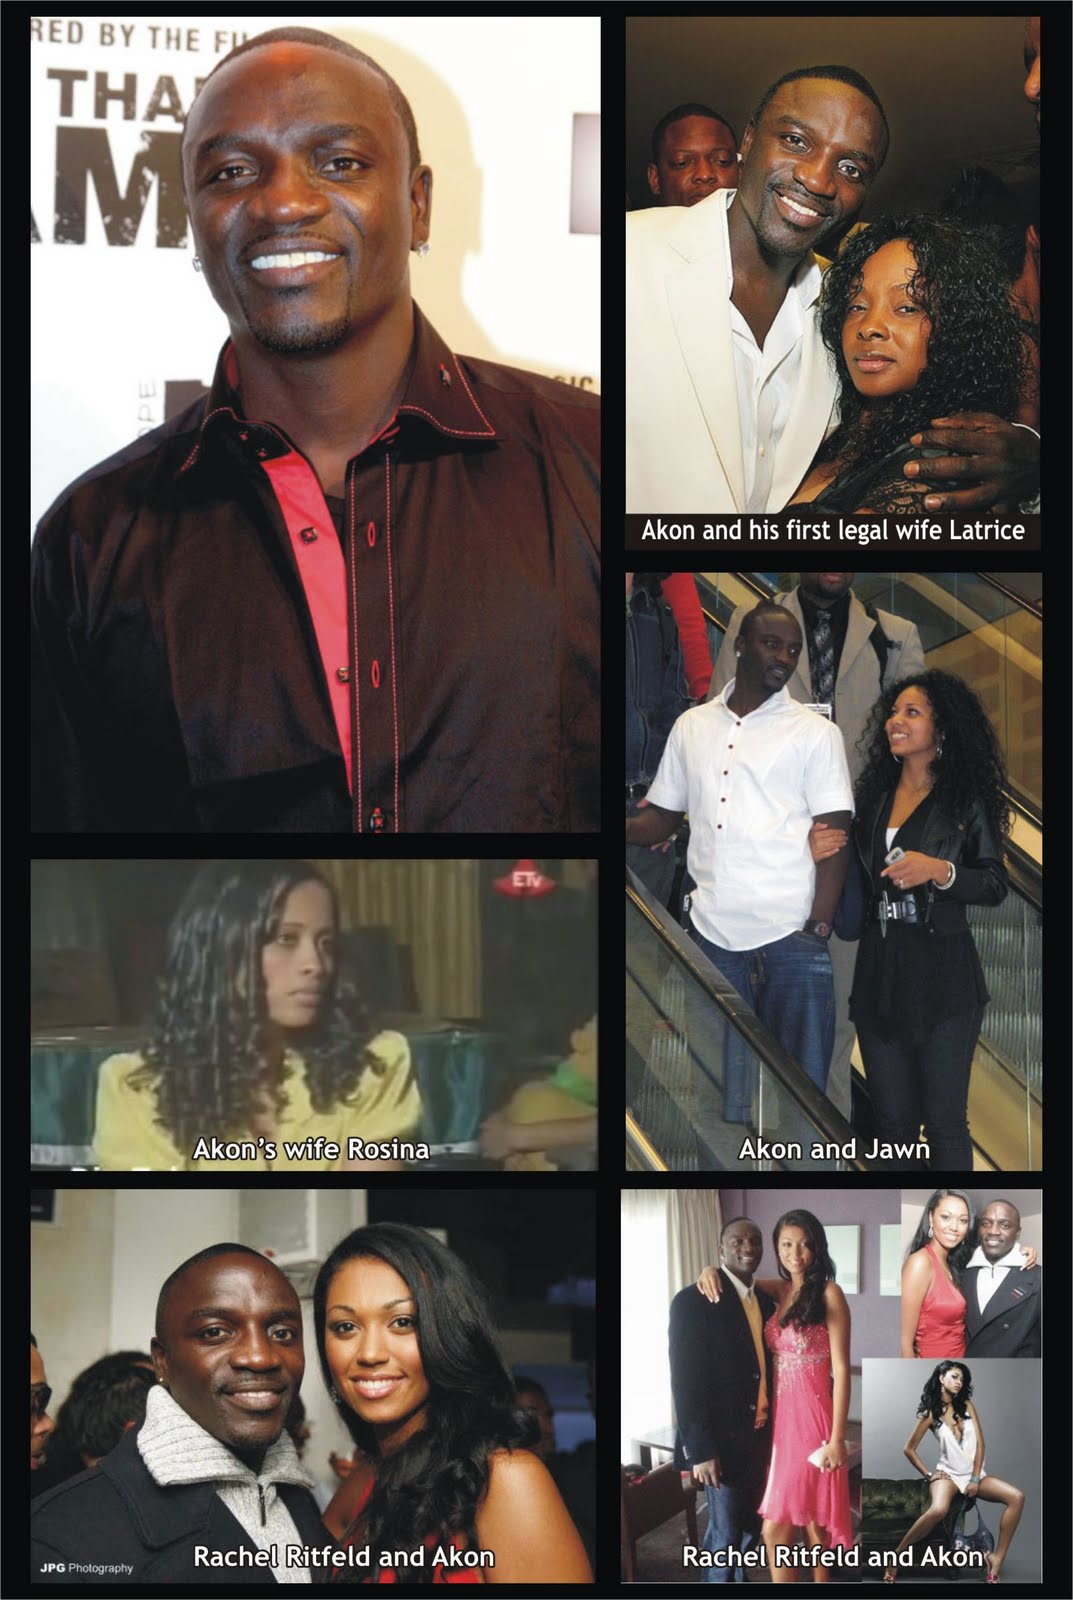 Akon's Wife Tomeka http://www.showbizhub.net/2011/09/akons-best-kept-secret-exposed.html